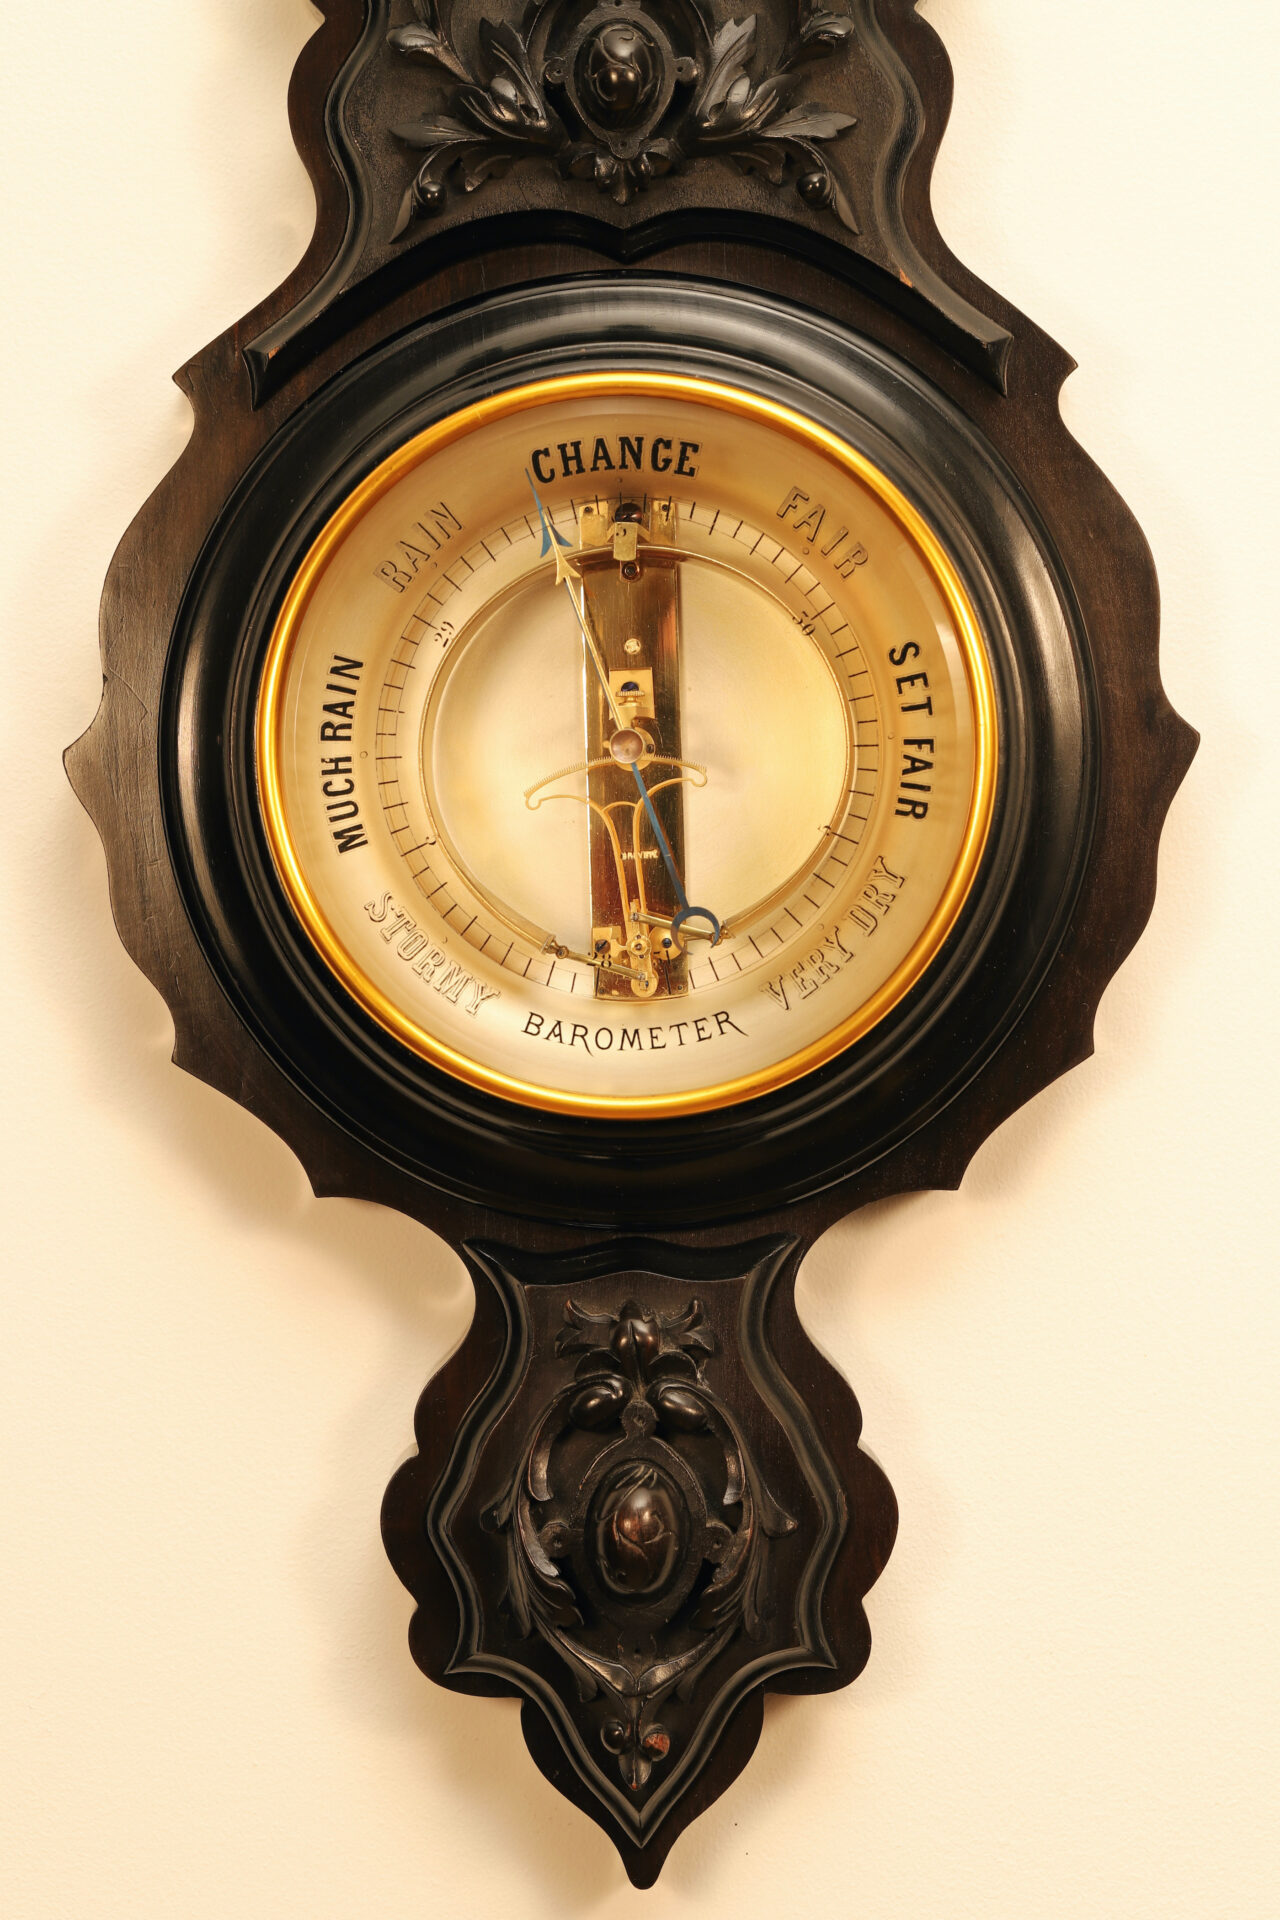 Image of dial and lower part of carved surround from Jules Richard Bourdon Barometer No 45028 c1900